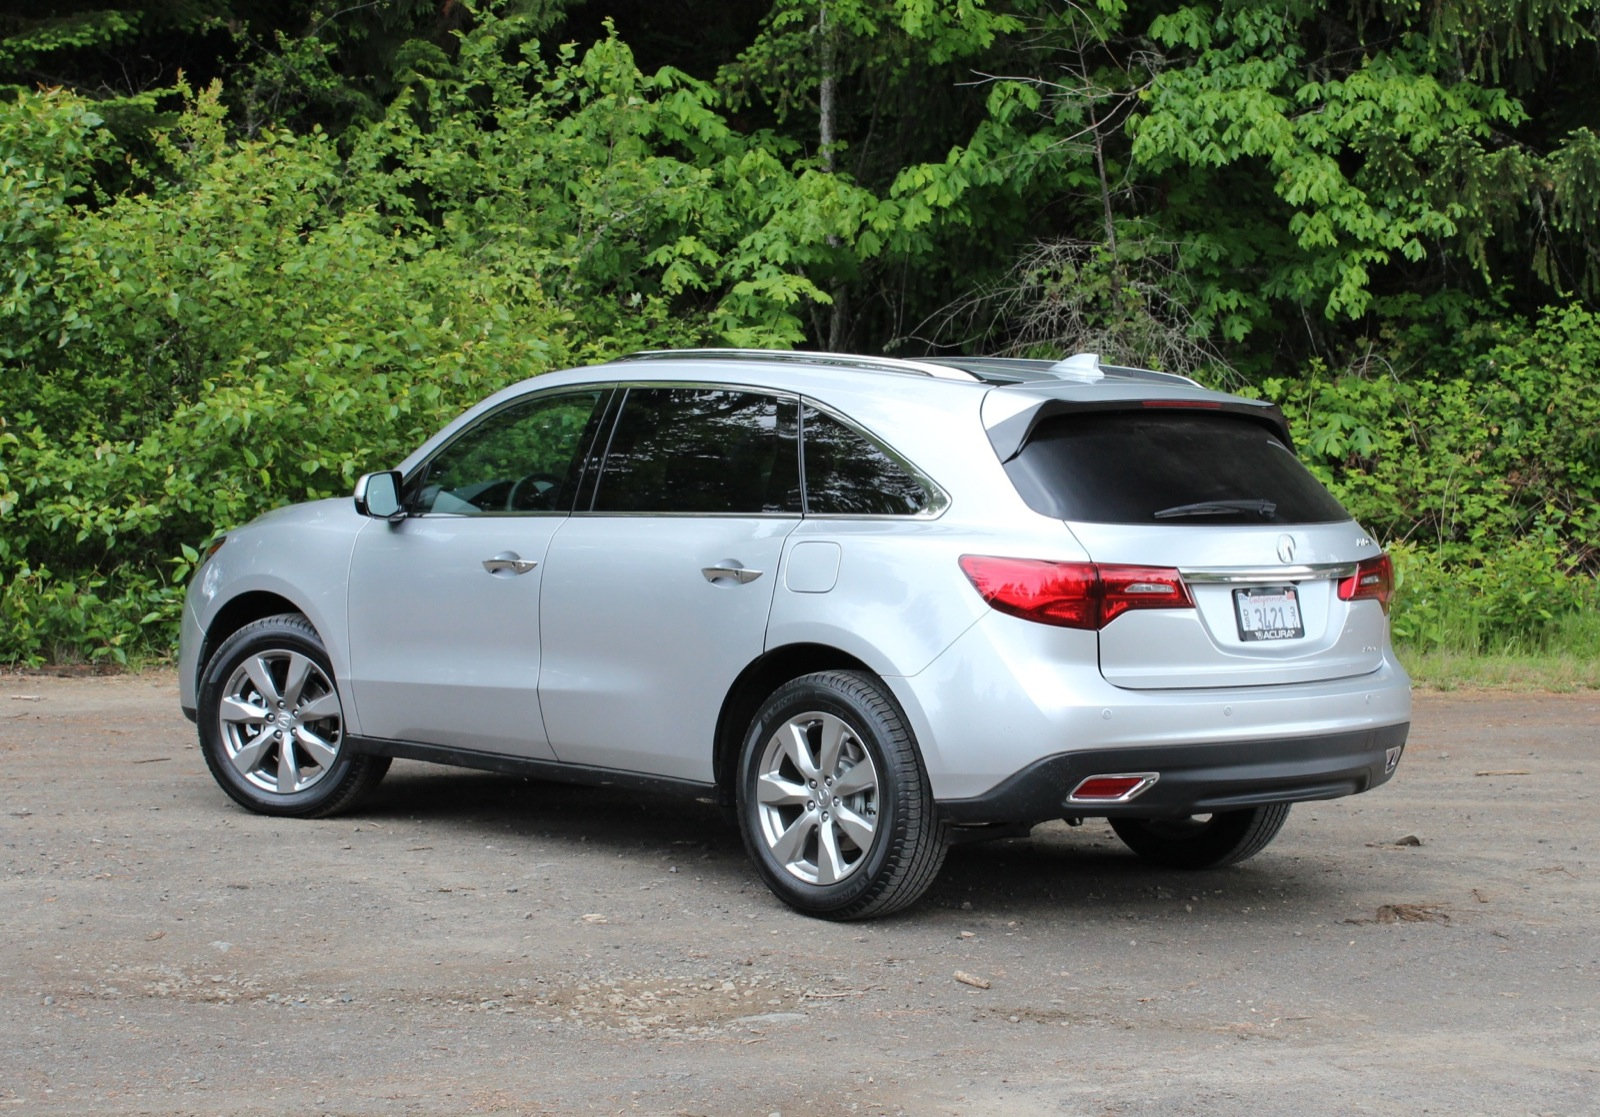 2014 Acura MDX, 2014 Toyota Tundra, 2015 Porsche Macan Turbo: Today's Car News